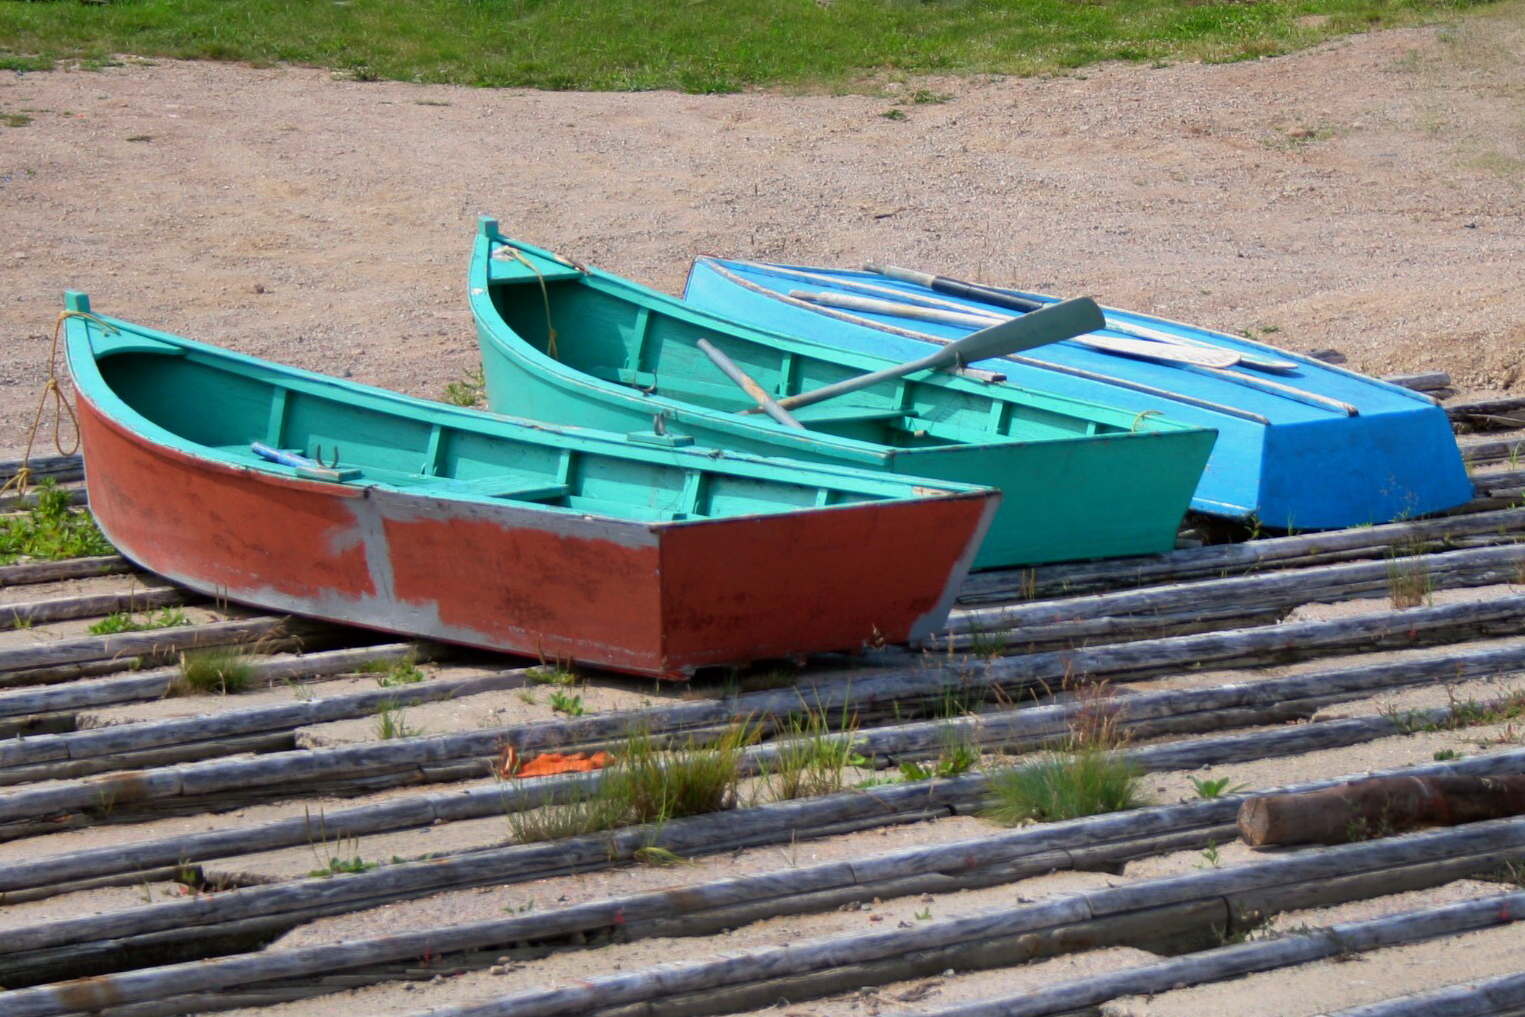 Three Row Boats